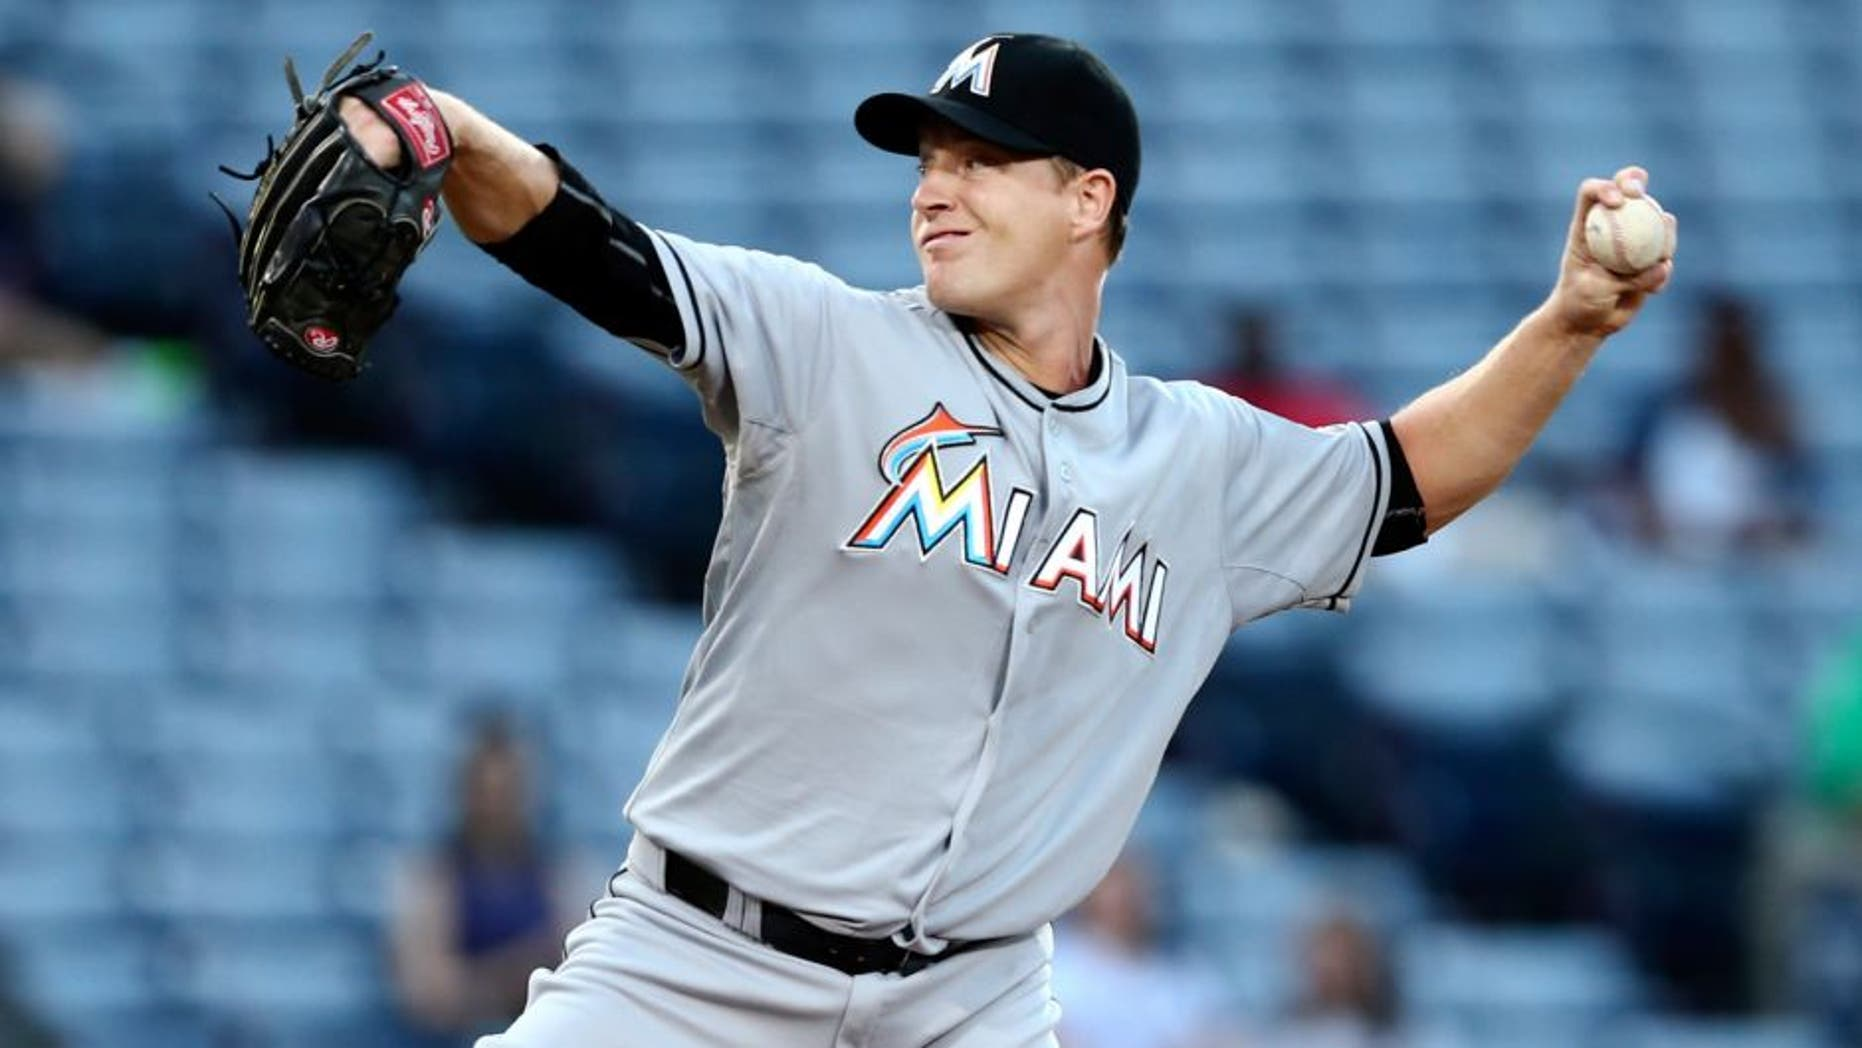 Miami Marlins starting pitcher Chris Narveson (45) works in the first inning of a baseball game against the Atlanta Braves Monday, Aug. 31, 2015, in Atlanta. (AP Photo/John Bazemore)